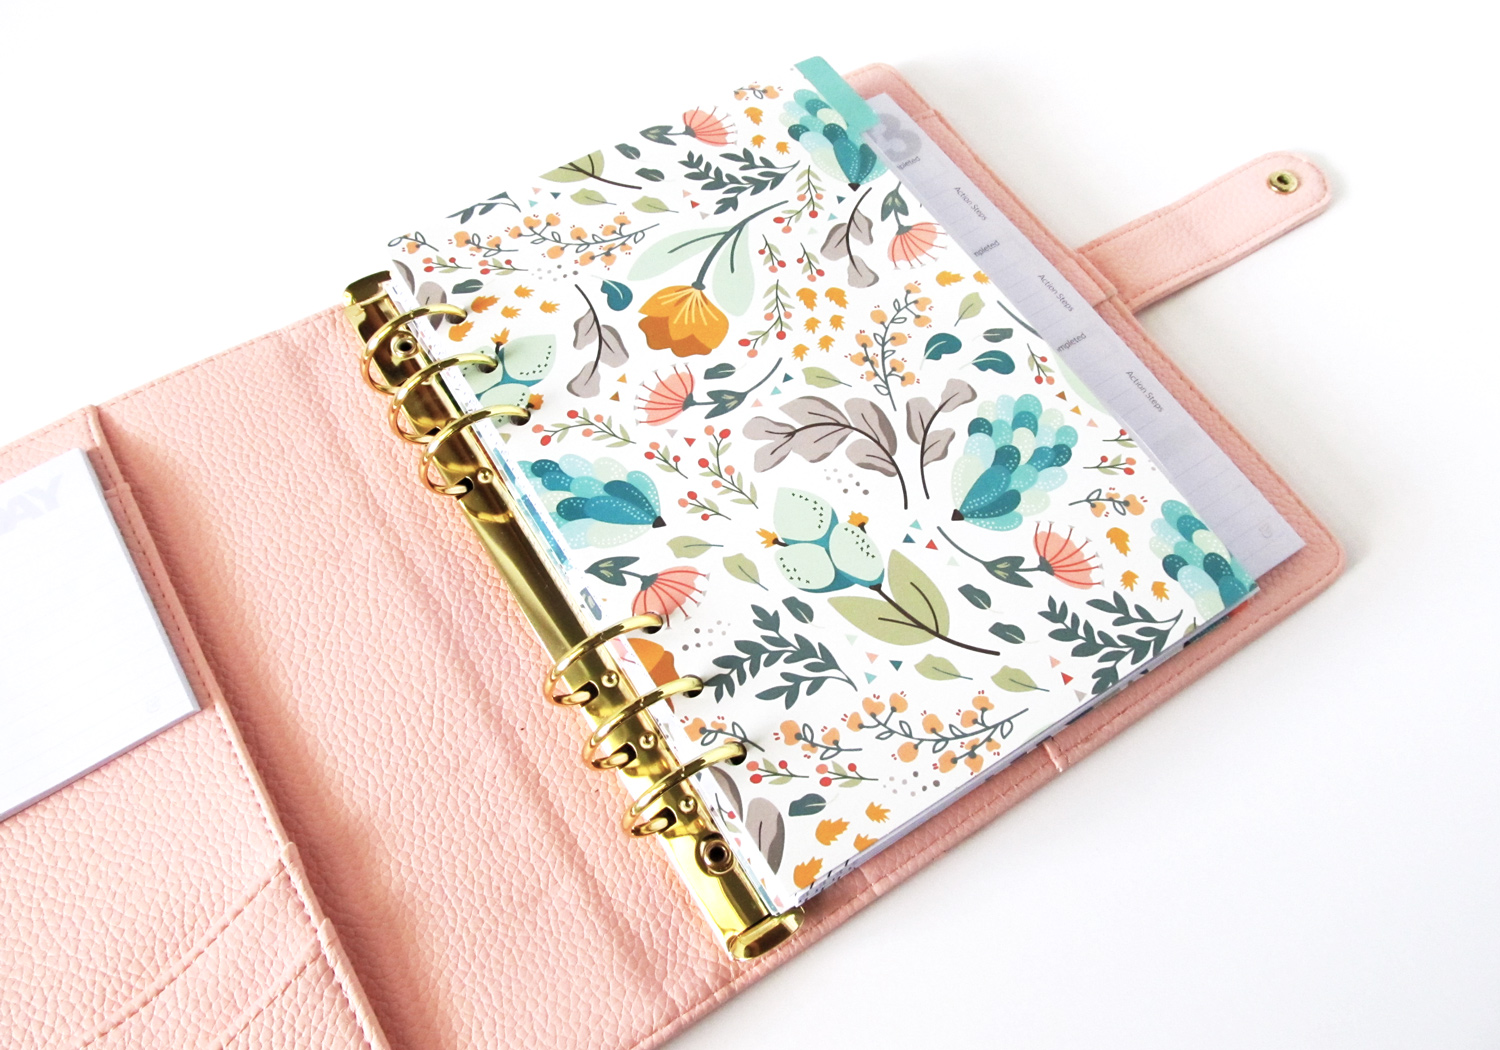 green-and-lyme-planner-with-pattern